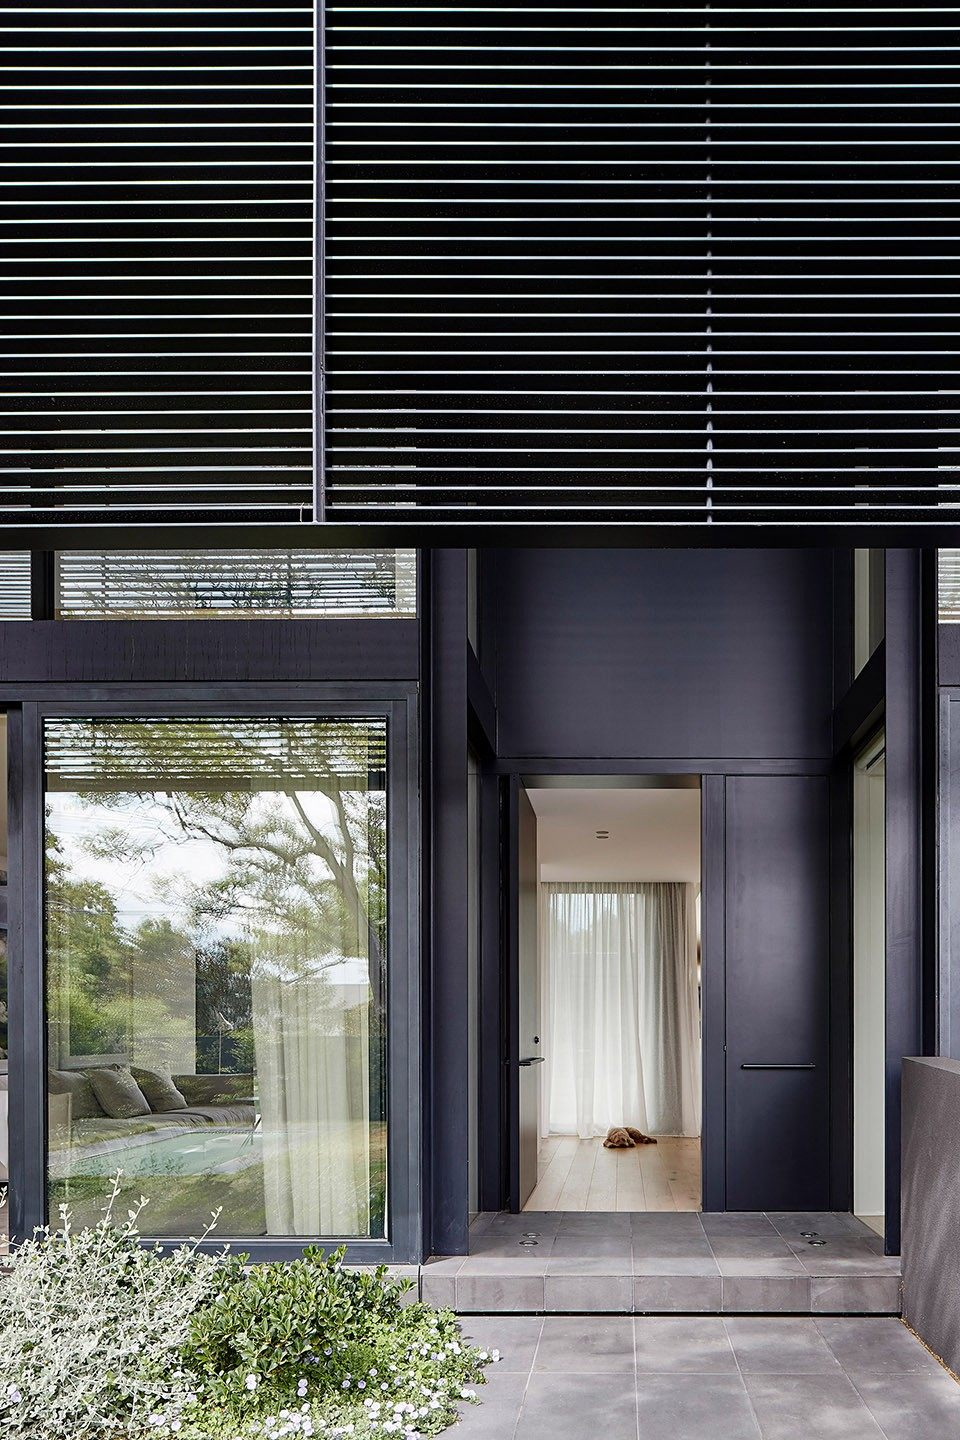 10-mayfield-avenue-residence-by-studiofour.jpg